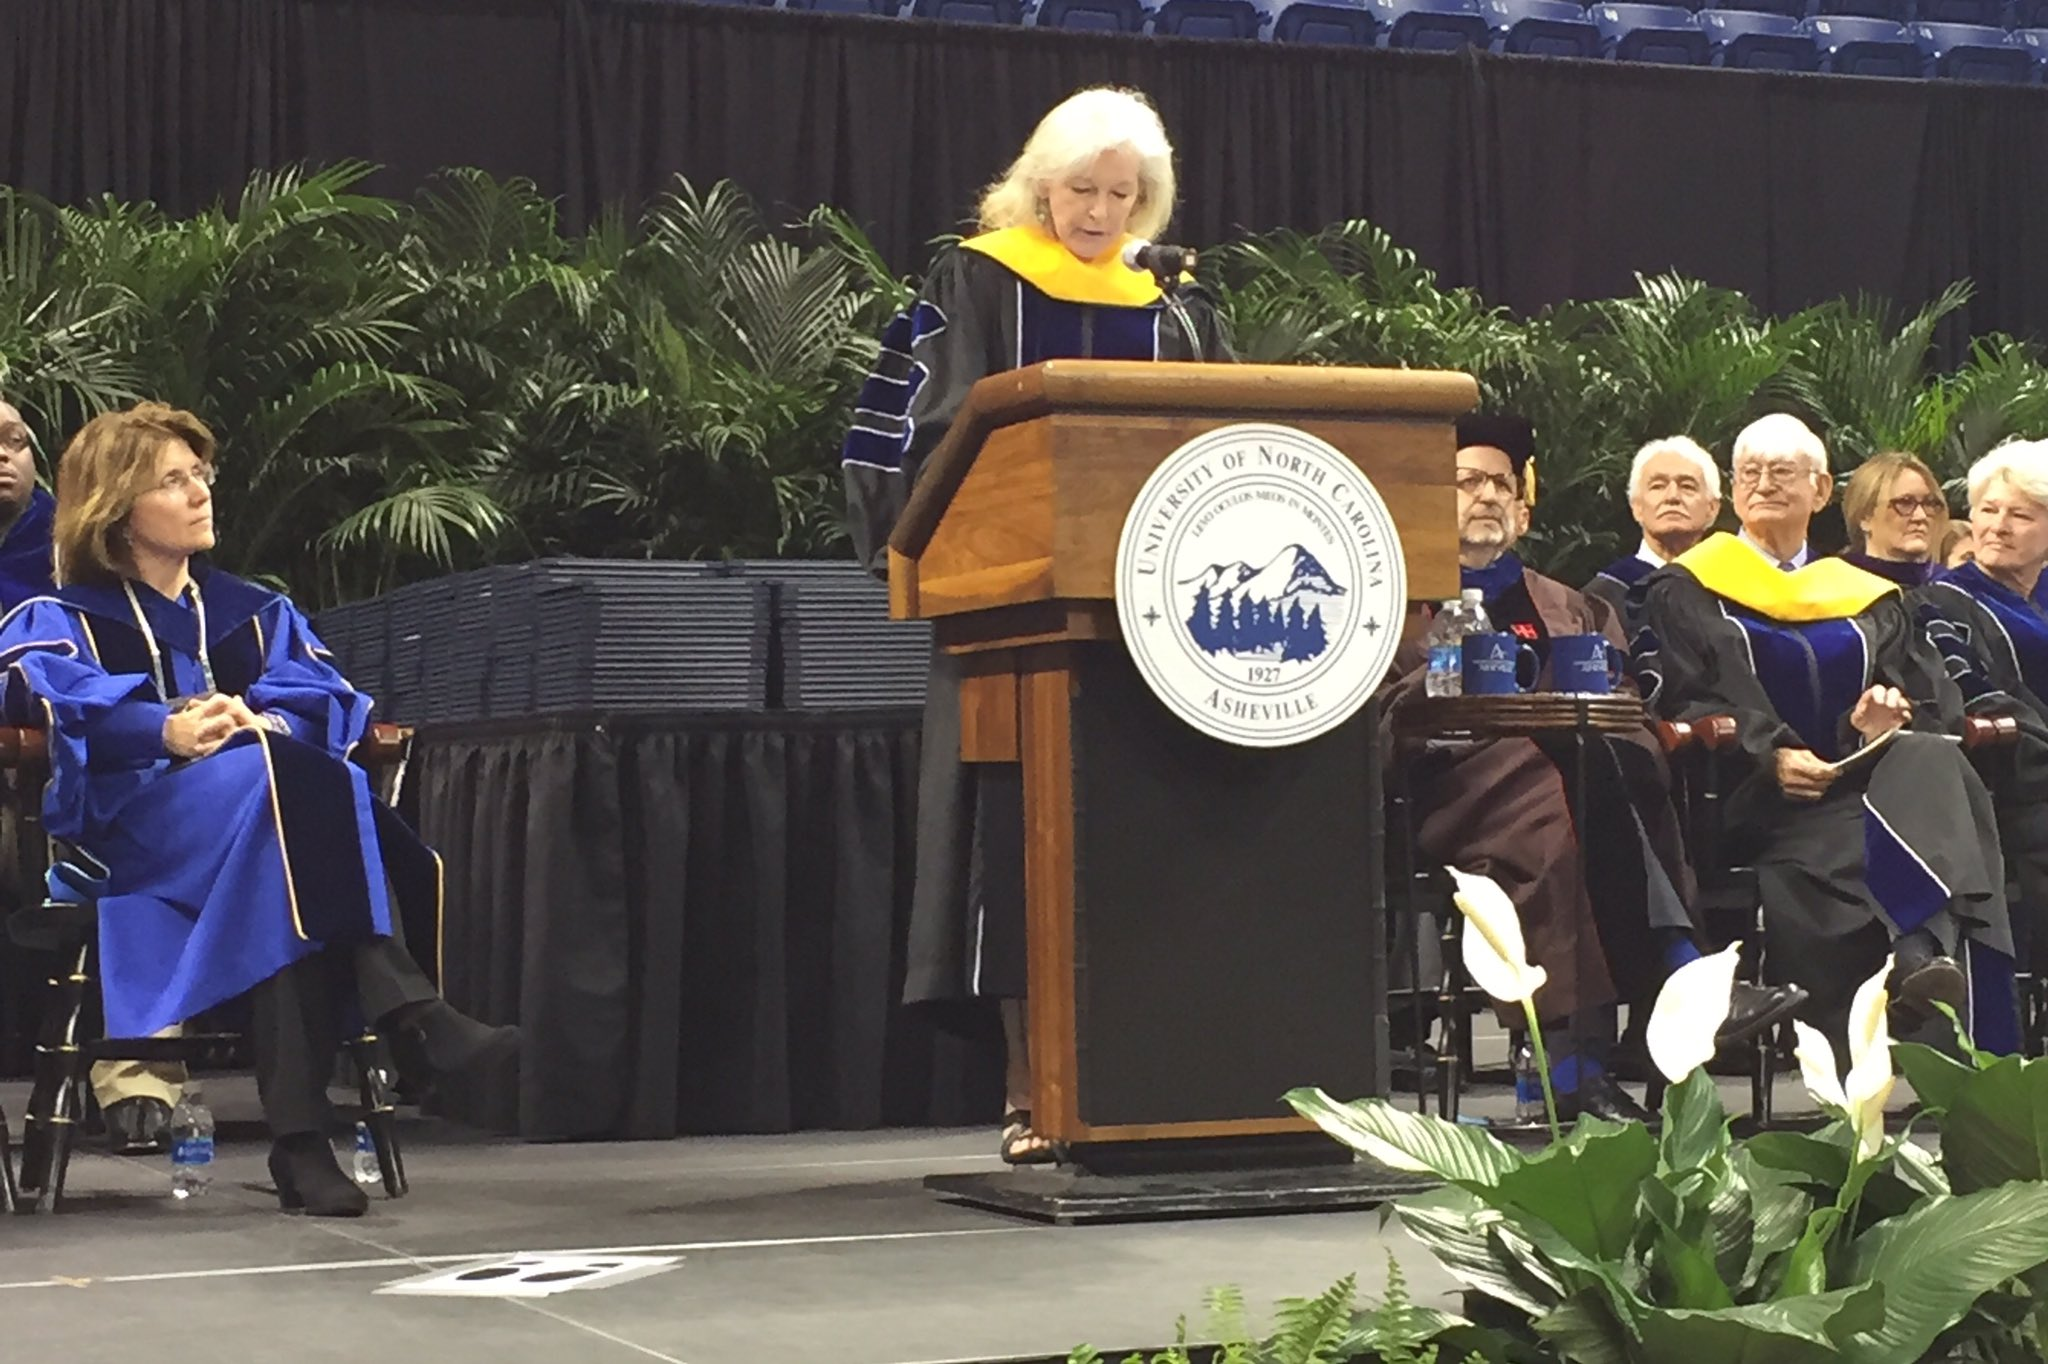 Honored to have alumna and #NobelPrize winner Ko Barrett '94 as our commencement speaker. #UncAvl2017 https://t.co/rPWuCe4lDb